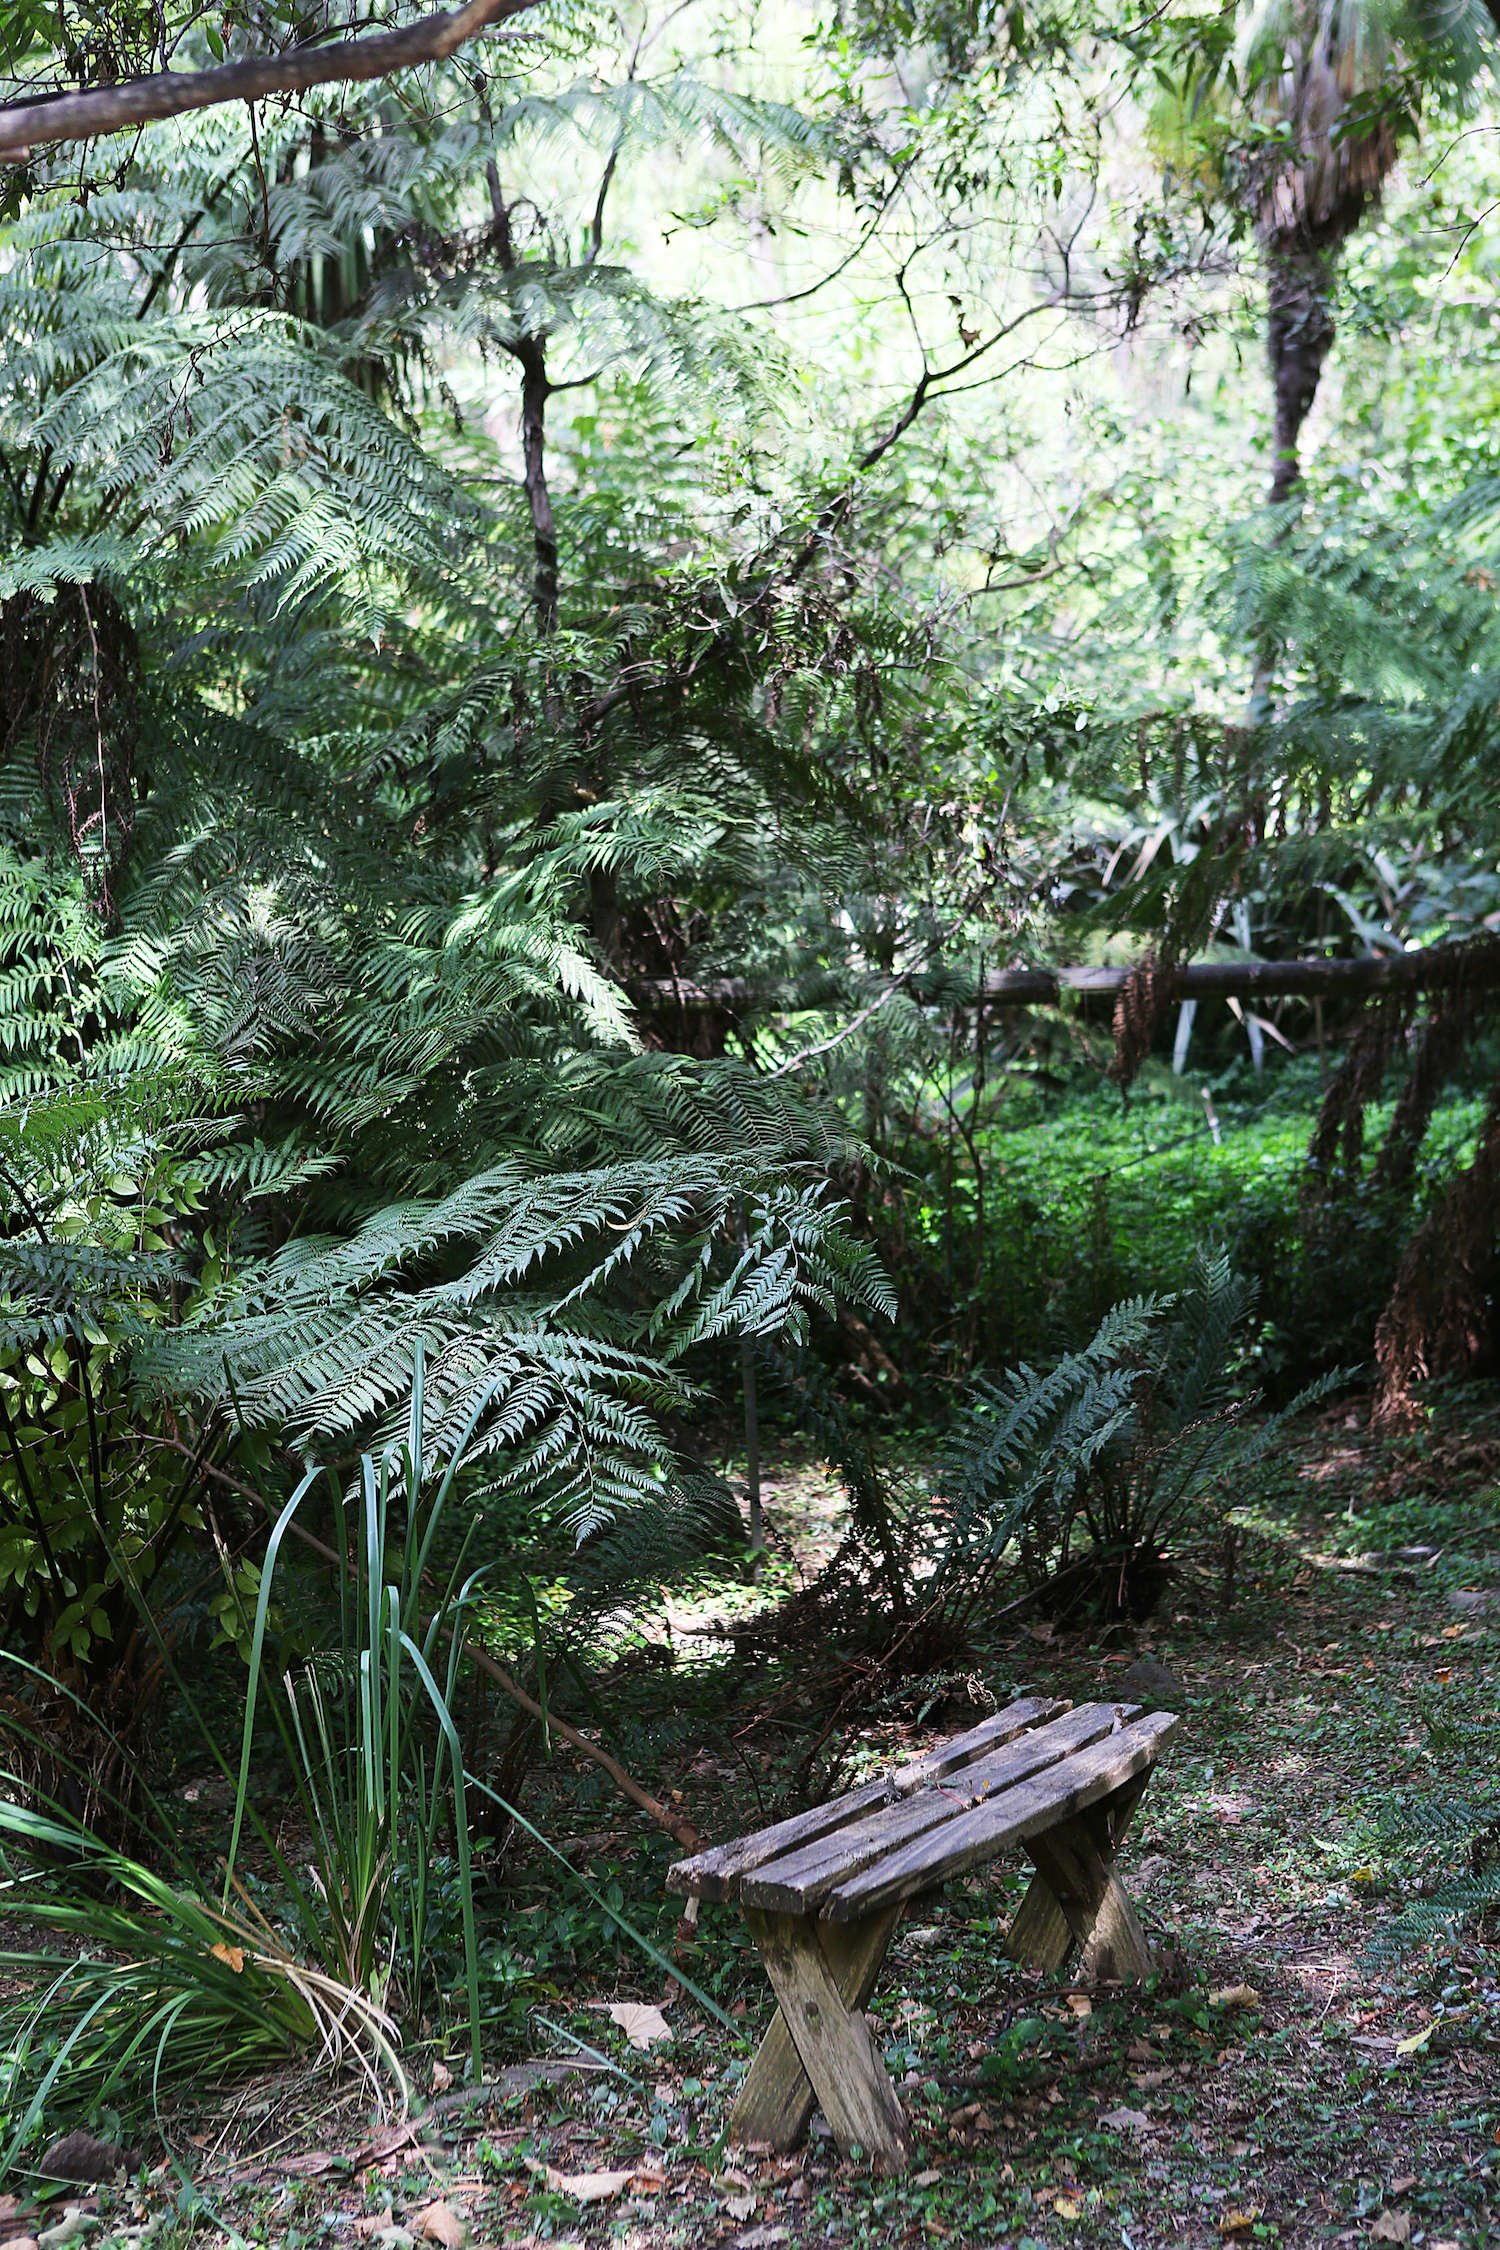 The garden remains green all year—though Melbourne is only a short way away,average summer temperatures in Belgrave reach only about 73 degrees Fahrenheit and the region gets ample rain all year.